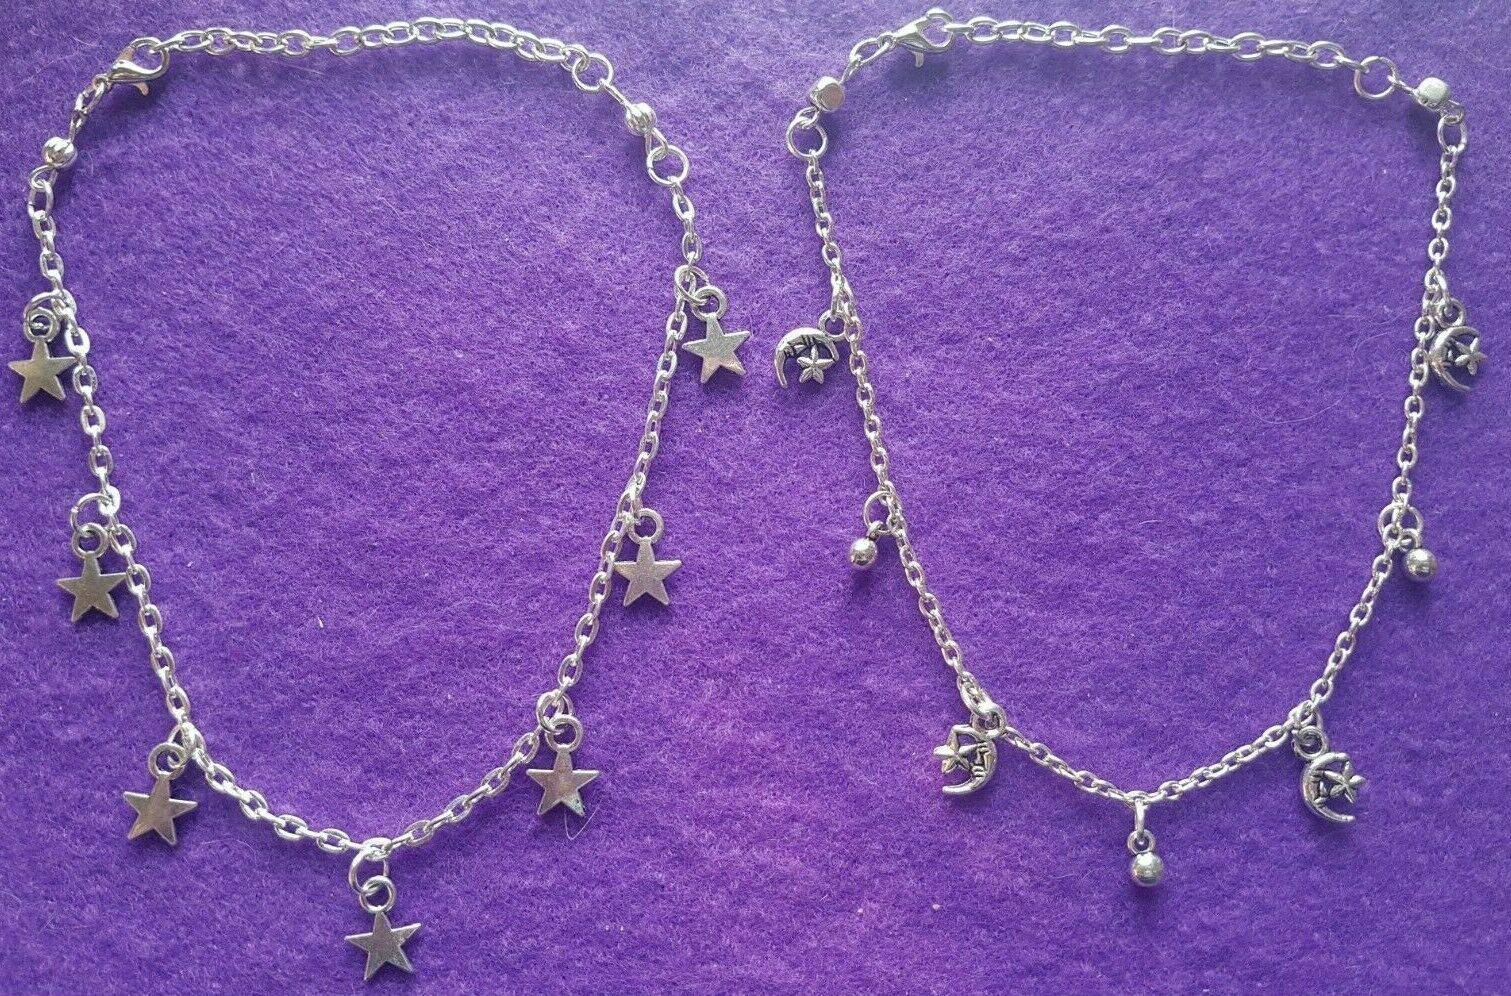 Silver Plated Anklet Chain - 2 Styles Stars or Moonstars + Gift Bagged